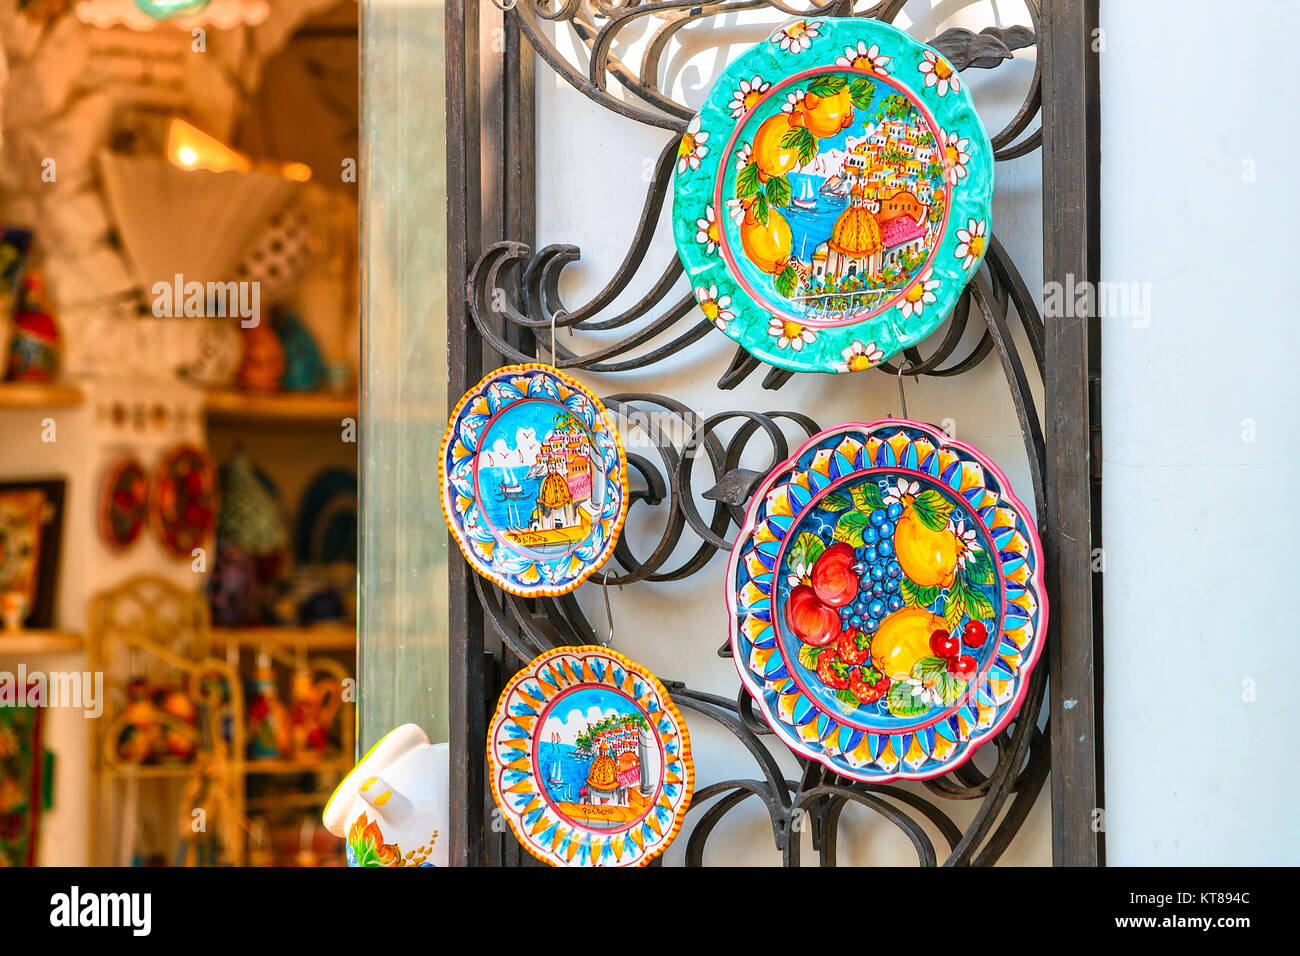 italy campania positano shop in stockfotos italy campania positano shop in bilder alamy. Black Bedroom Furniture Sets. Home Design Ideas